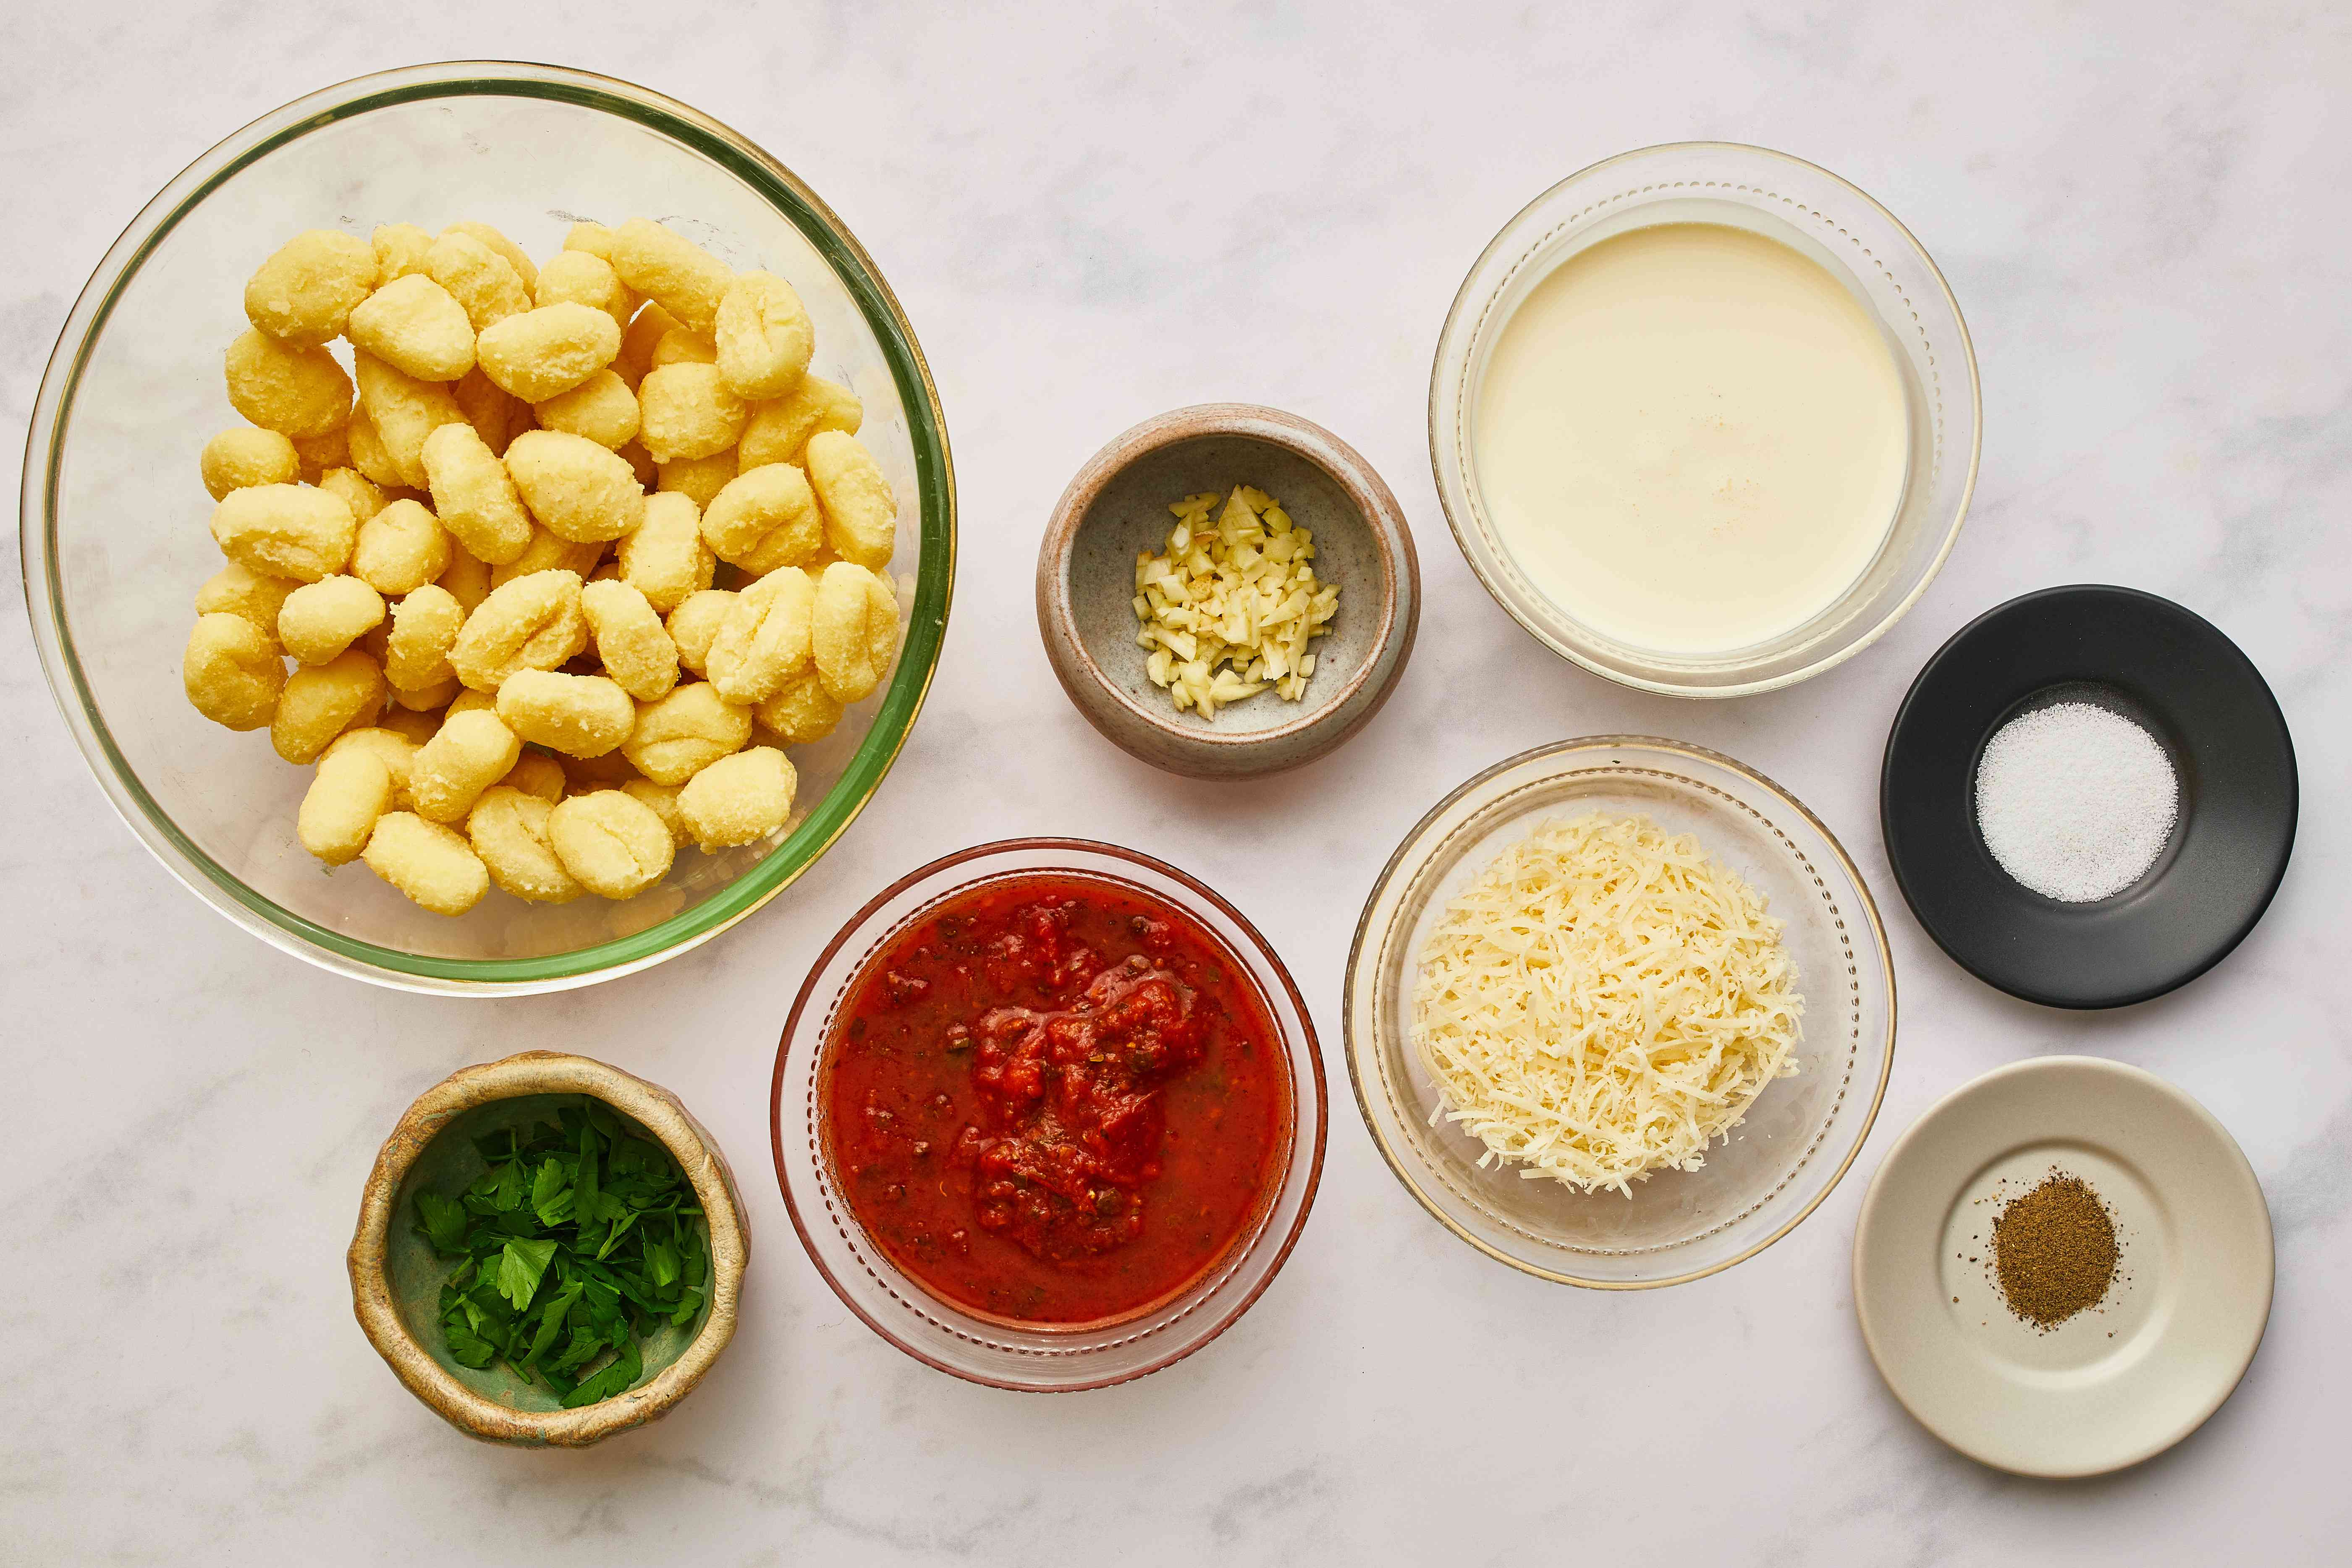 Creamy Pink Tomato Sauce for Gnocchi ingredients